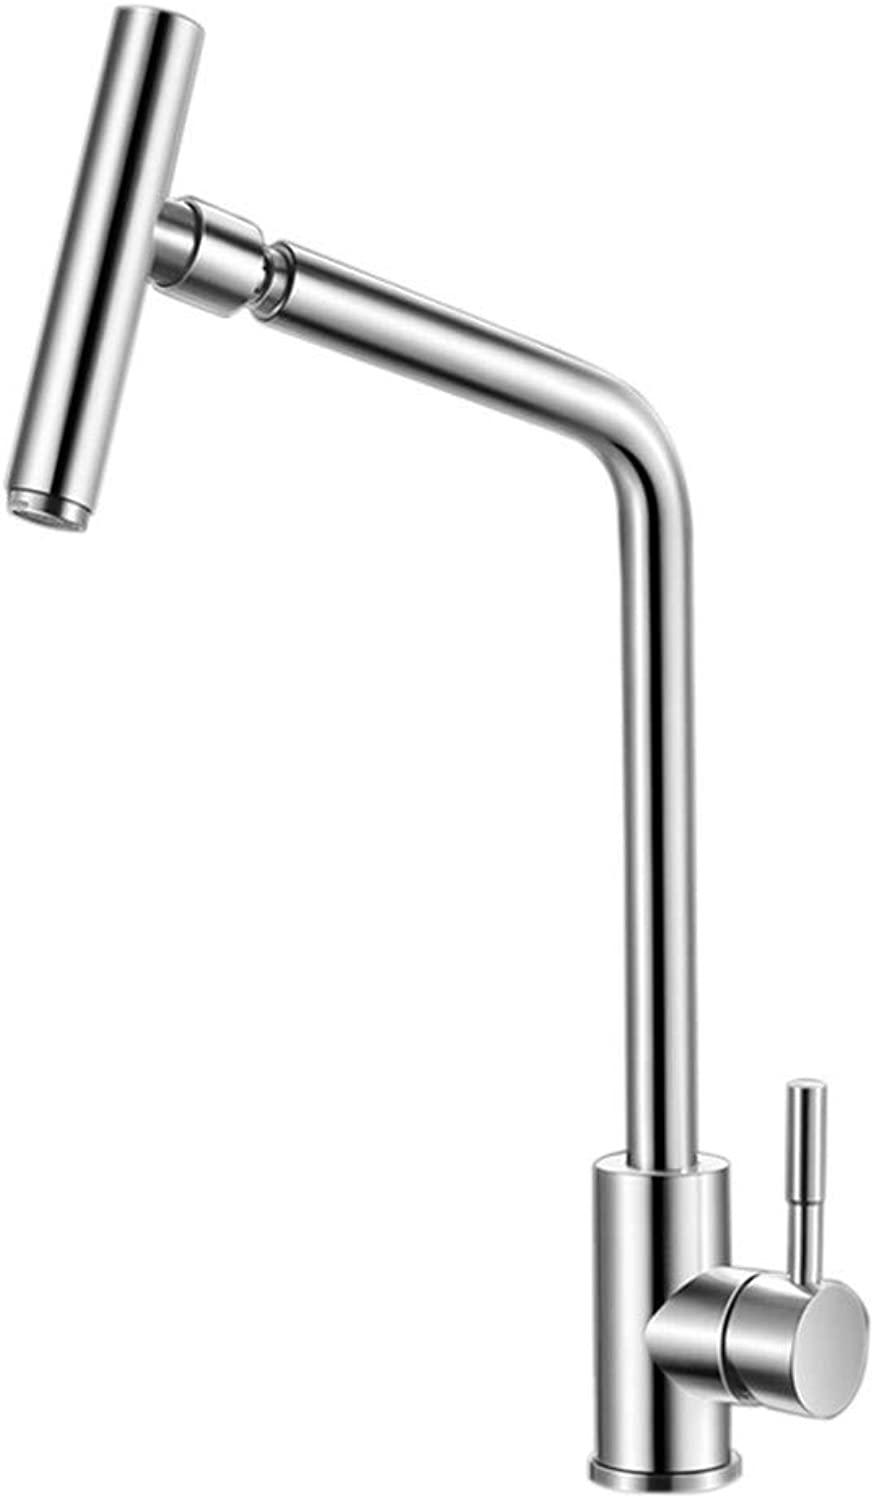 Faucet All-Round redating Kitchen Faucet hot and Cold Sink Stainless Steel hot and Cold redatable Faucet